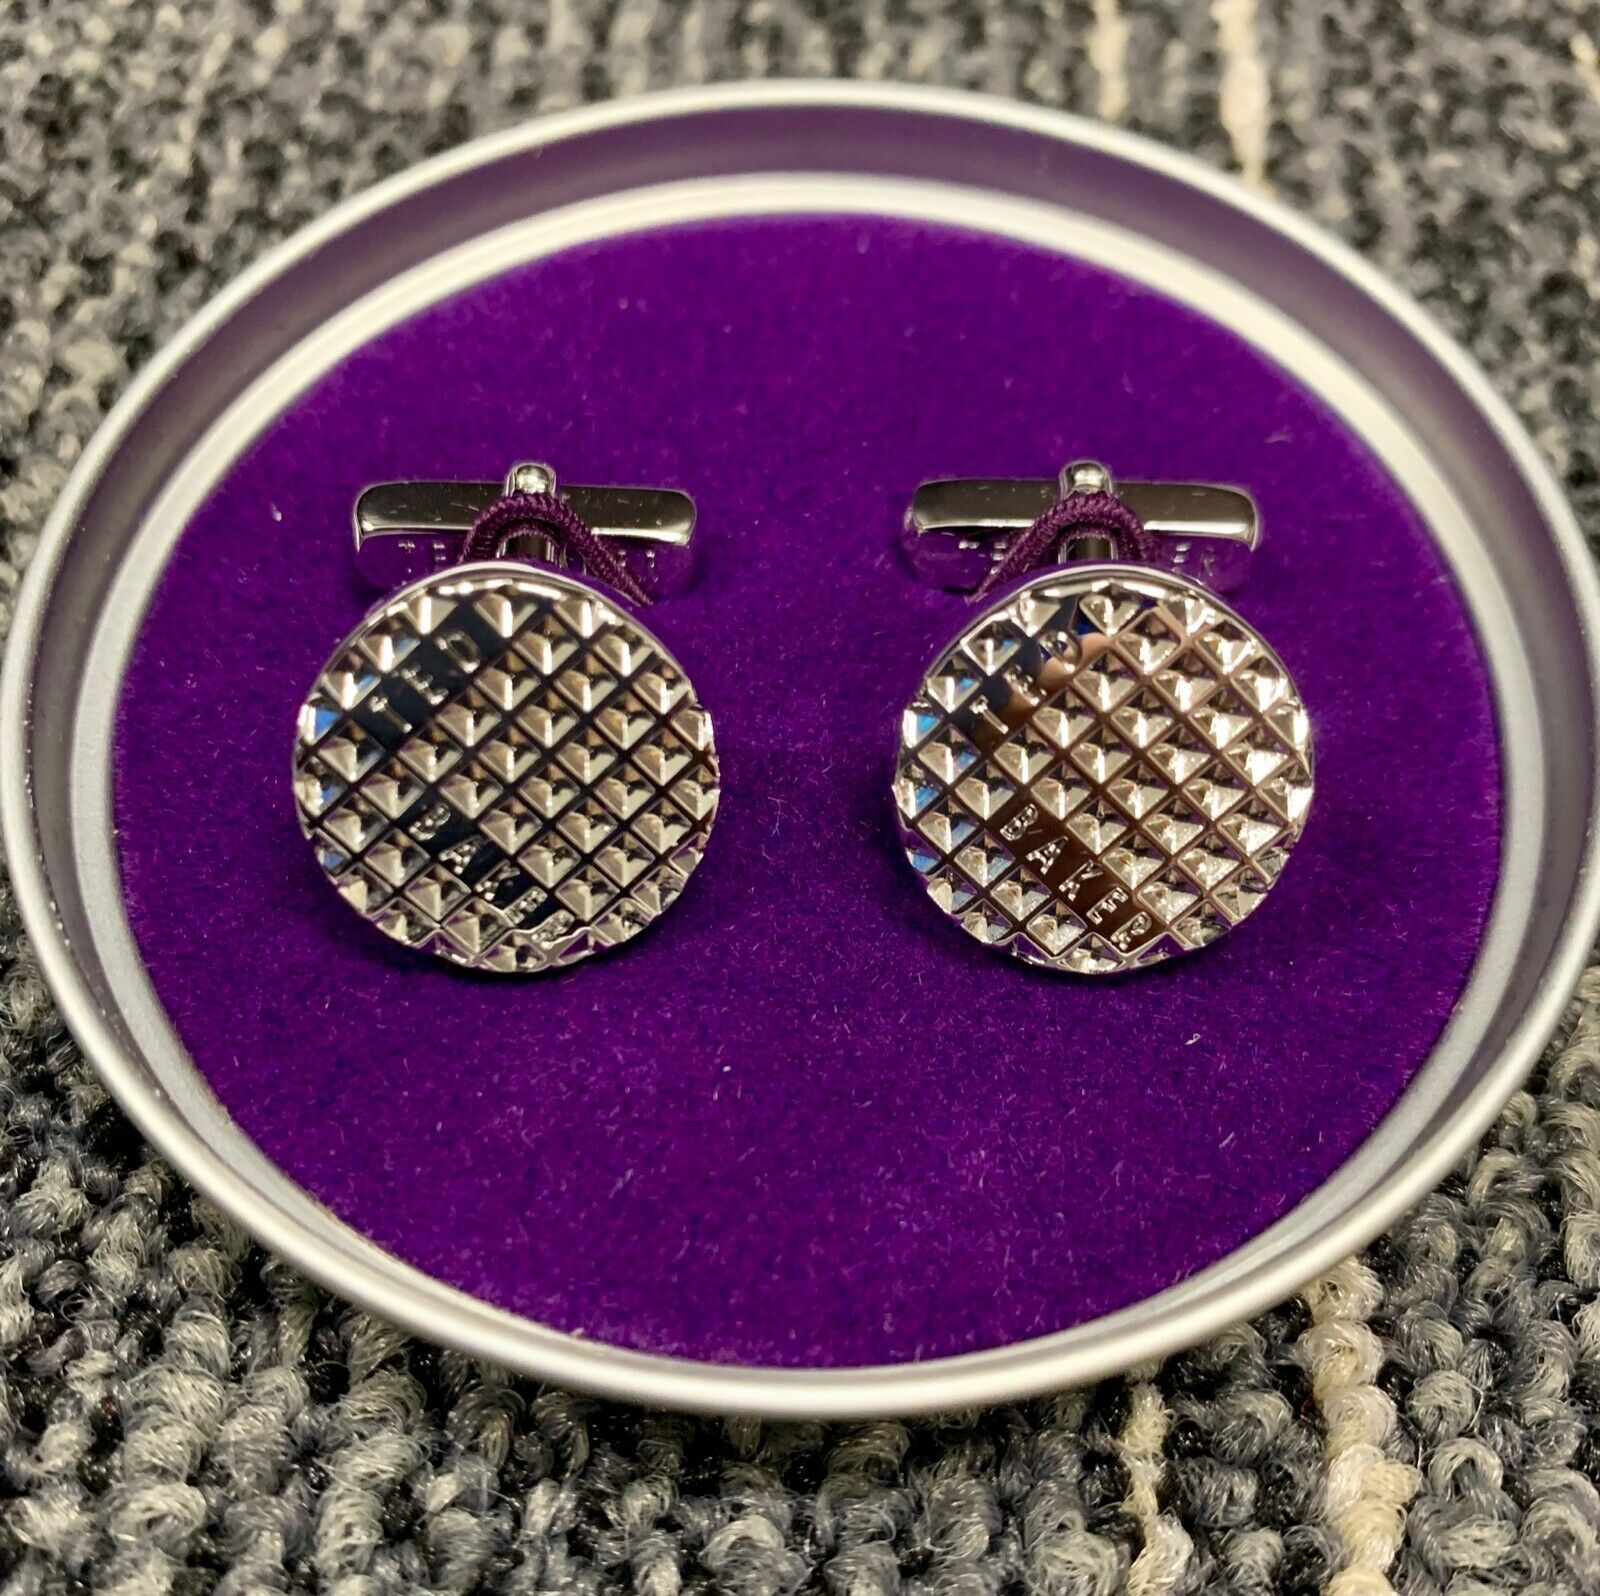 Ted Baker silver tone cuff links in gift box